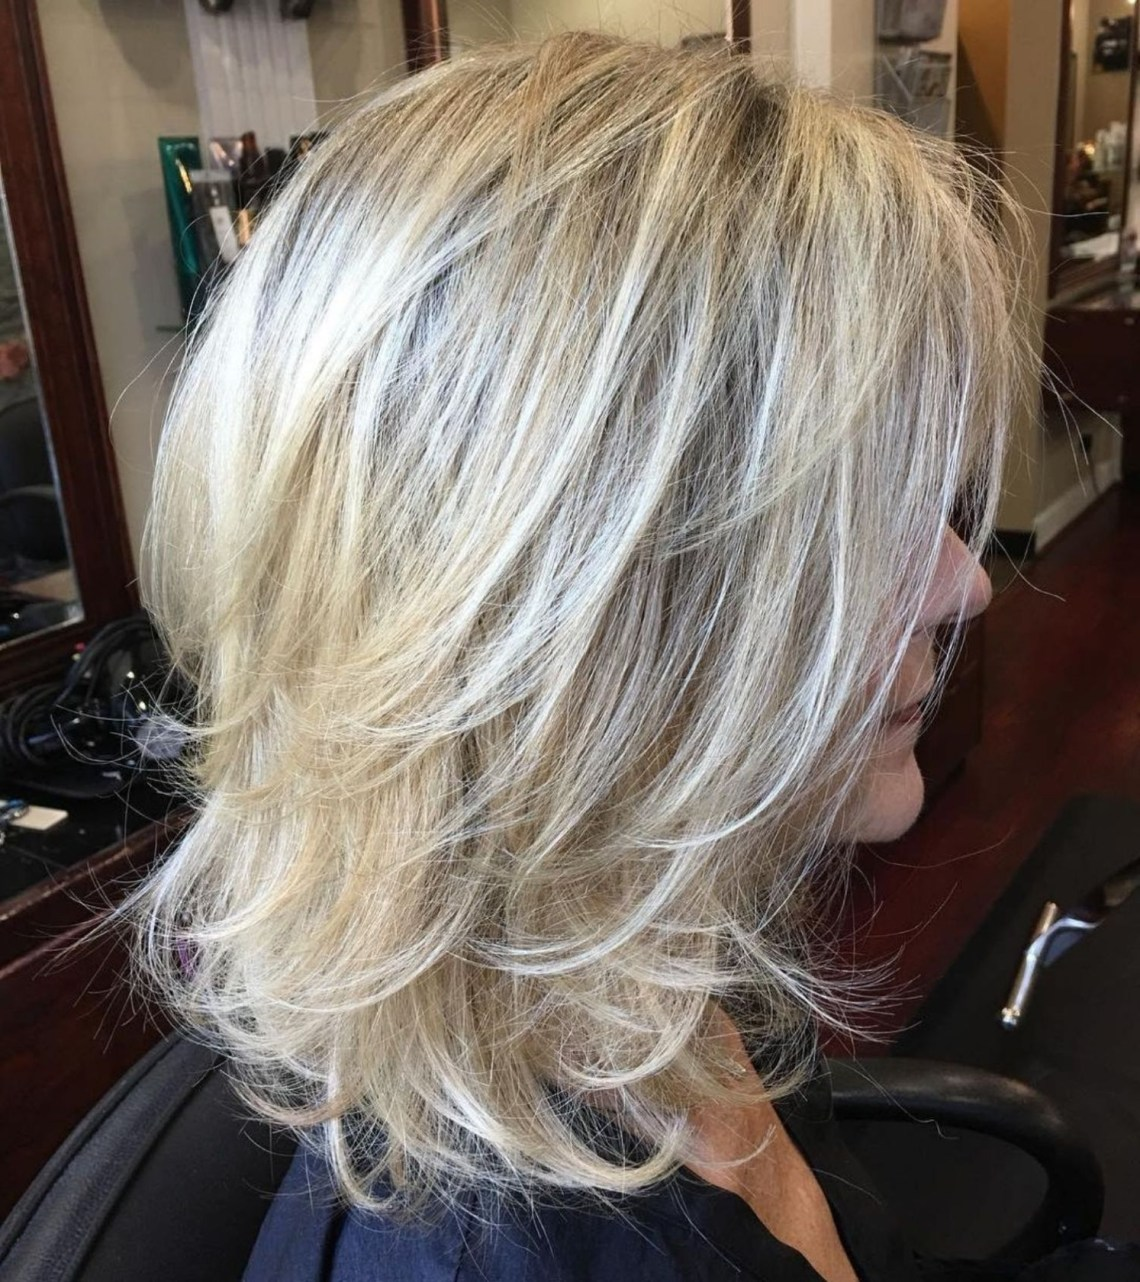 Medium Layered Blonde Hairstyle | Medium Shag Haircuts Blonde Hairstyles For Medium Length Hair